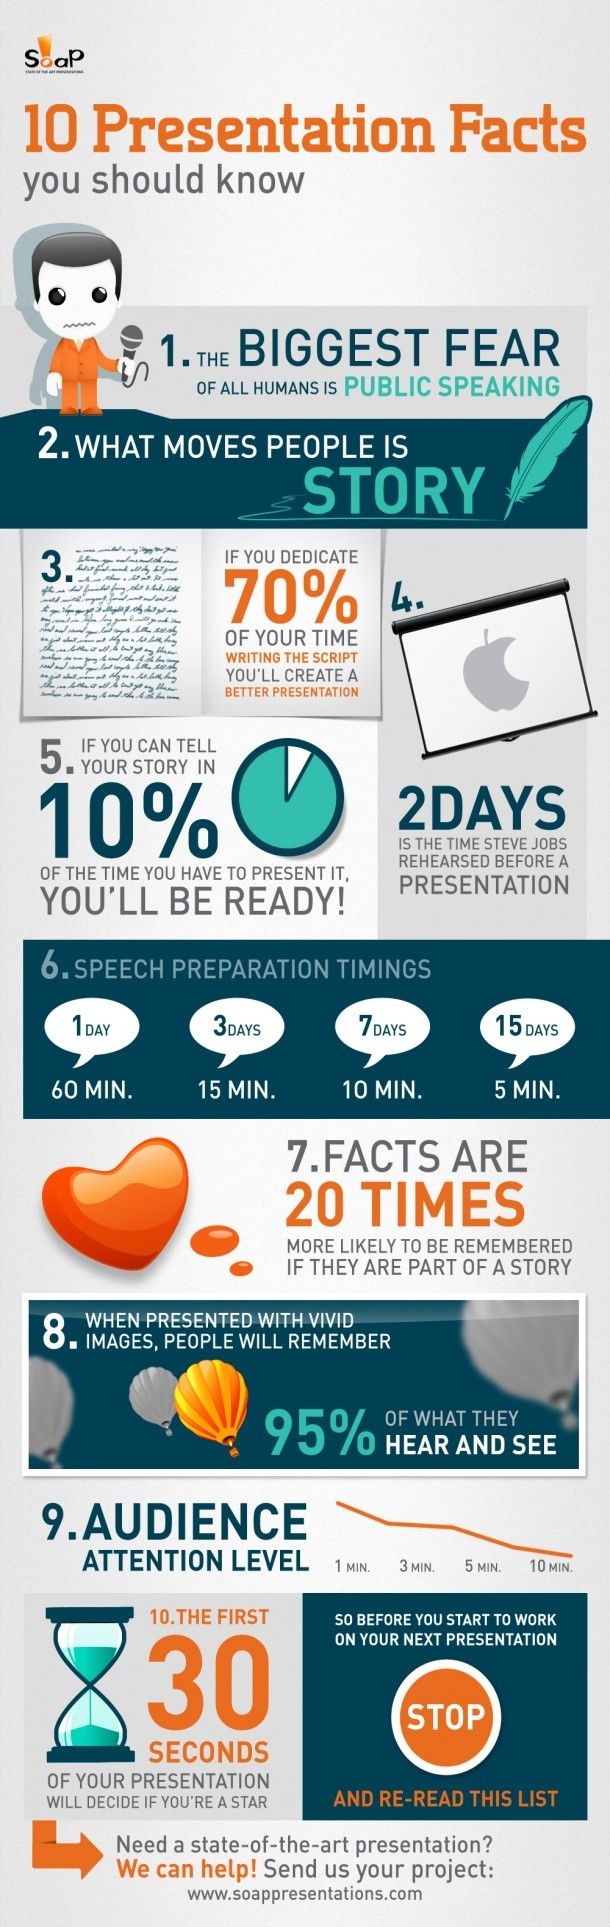 Think about not only what you're saying but also how you want the audience to react to what you're saying. Remember your presentation Facts! -Mr. Sims